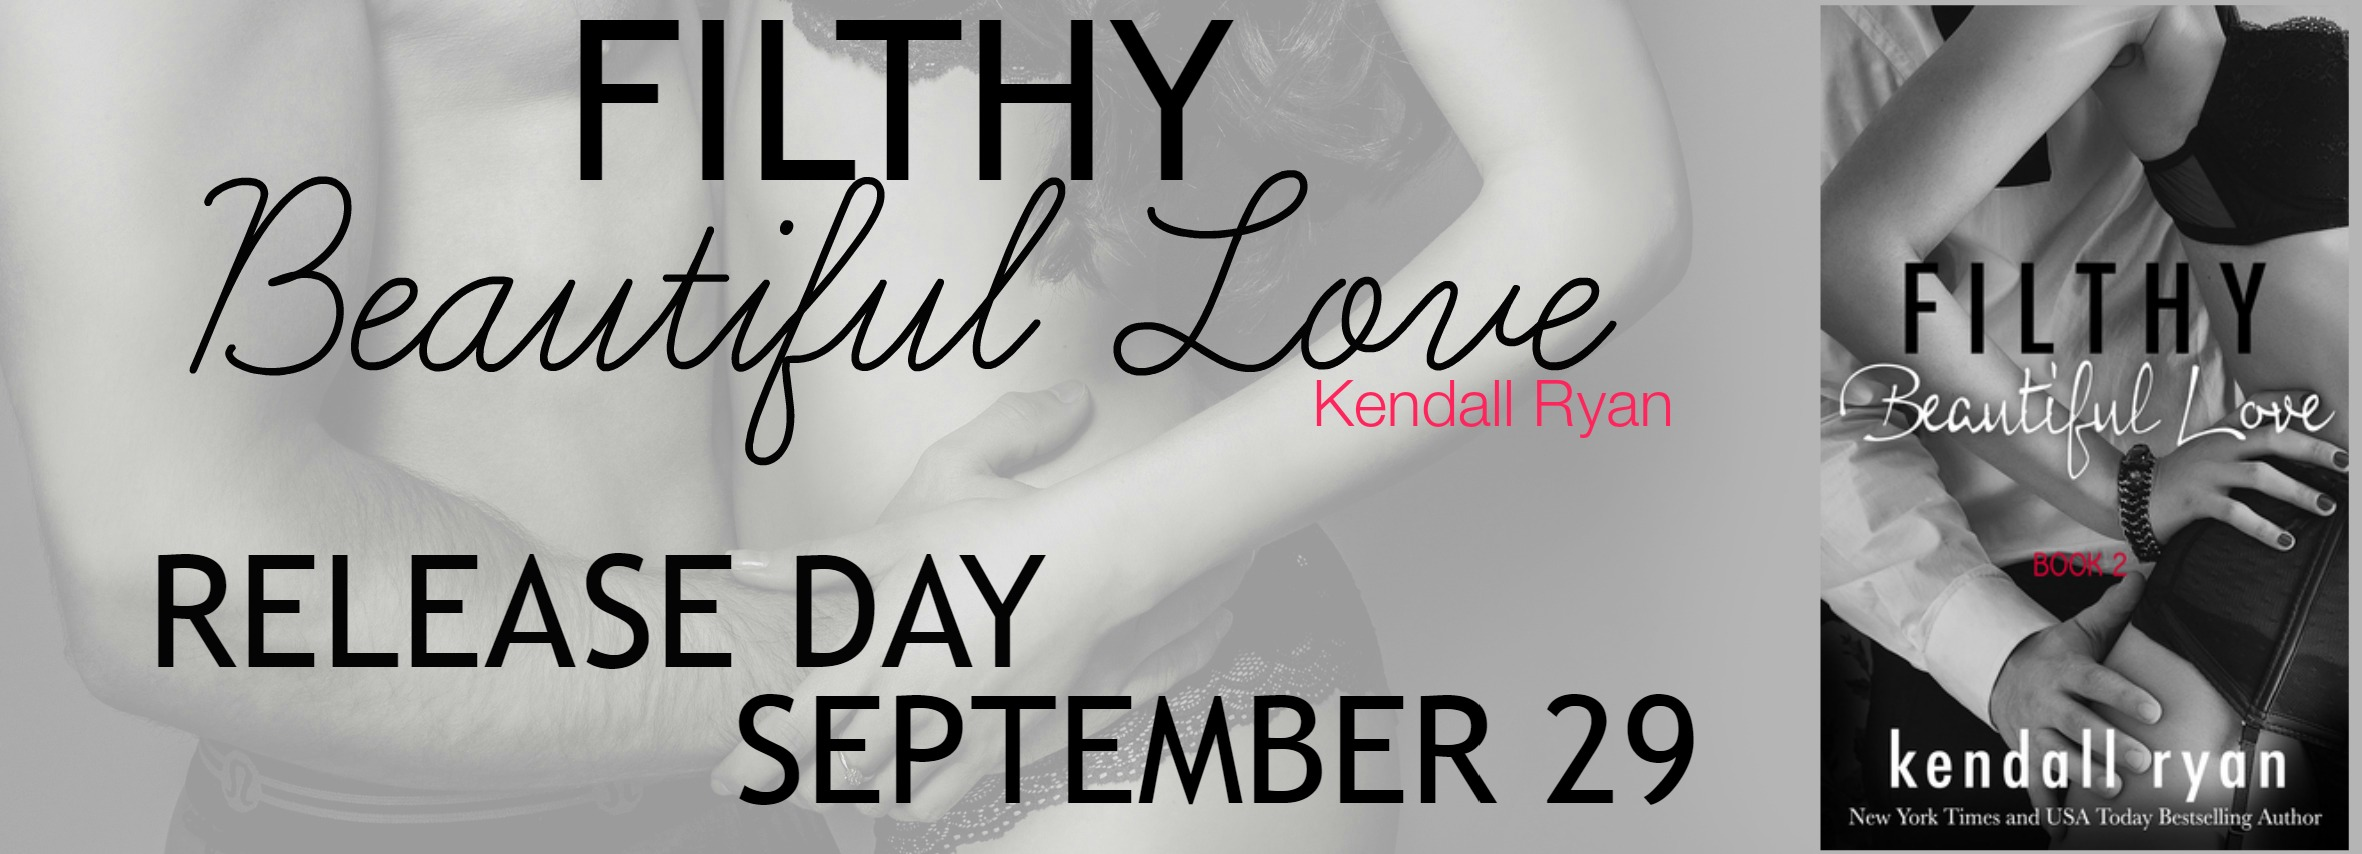 Release Day Launch: Filthy Beautiful Love (Filthy Beautiful Lies #2) by Kendall Ryan